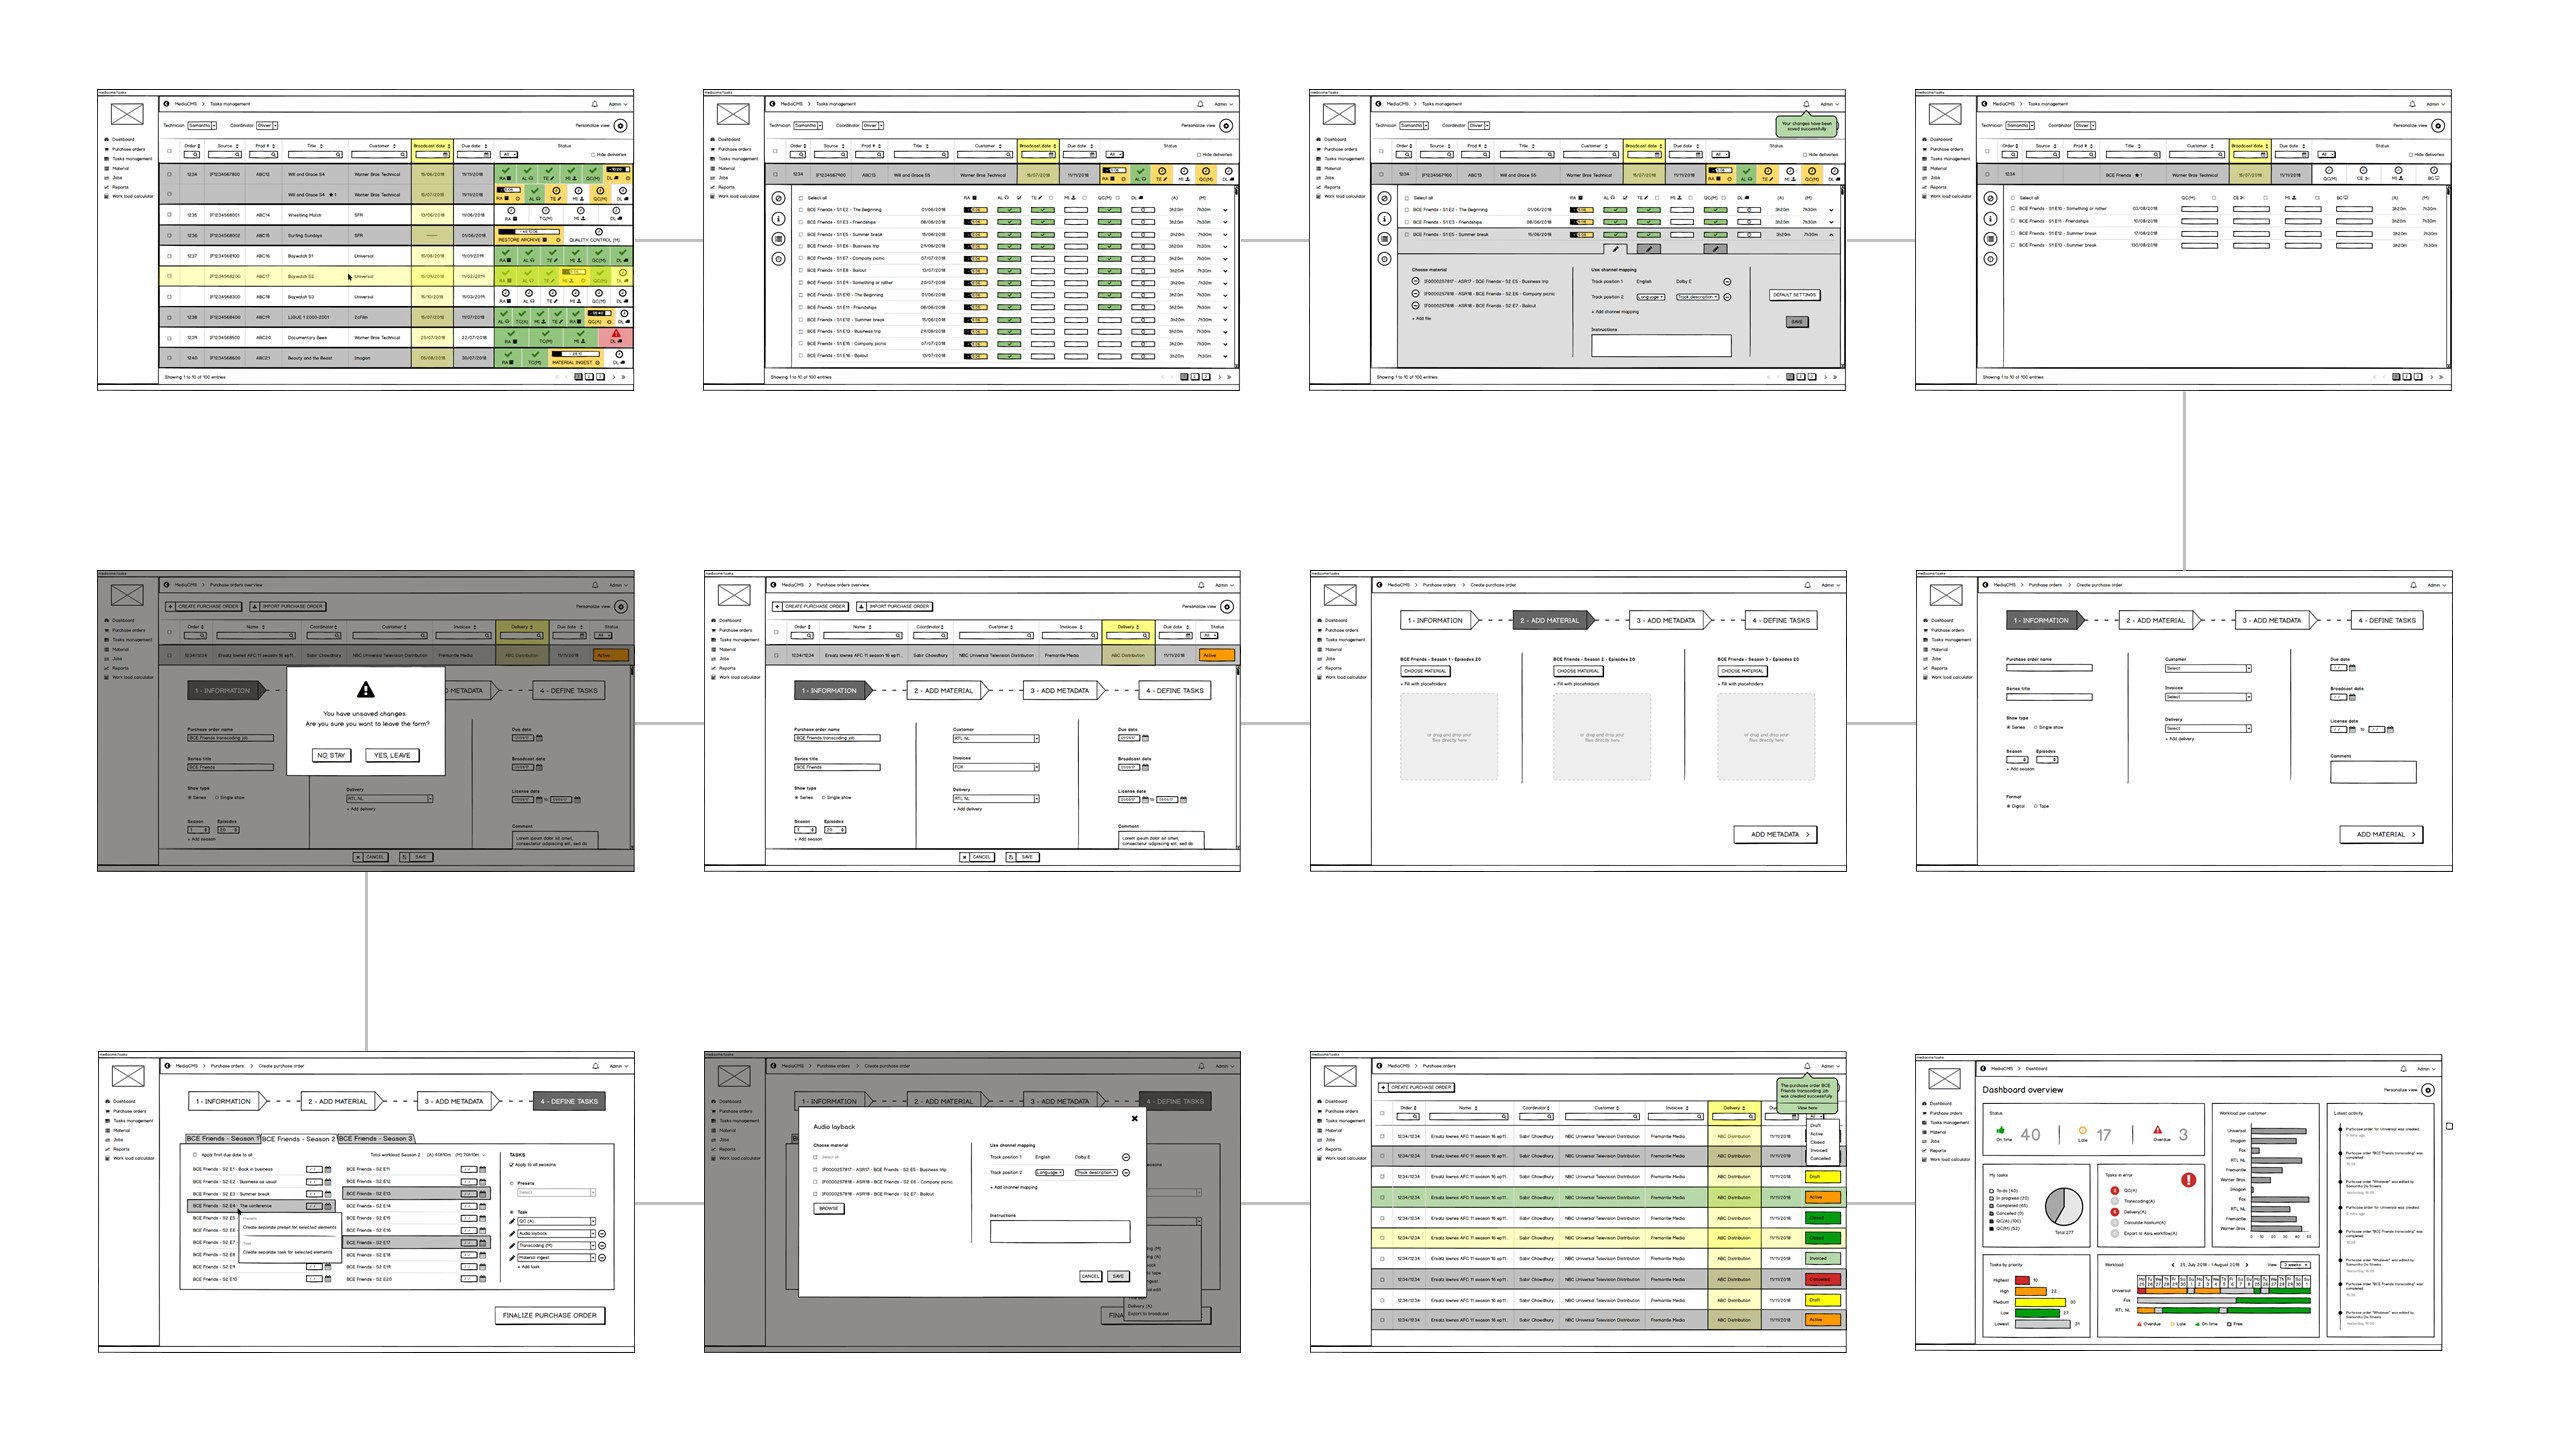 A sequence of screens demonstrating a use case based on the user flow diagram